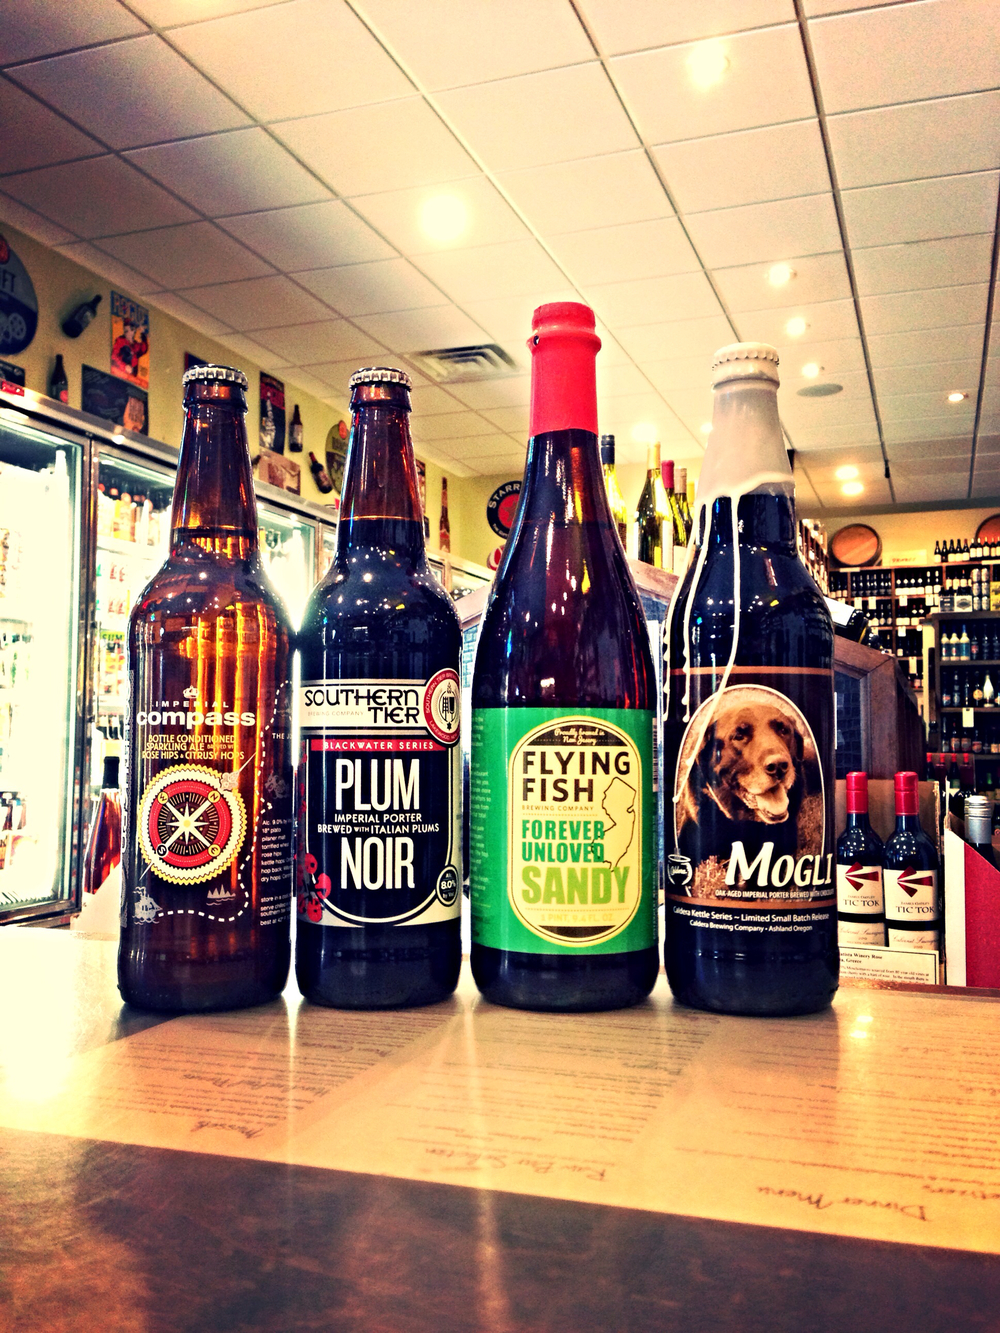 Southern Tier Compass & Plum Noir, Flying Fish Forever Unloved Sandy, and Caldera Mogli